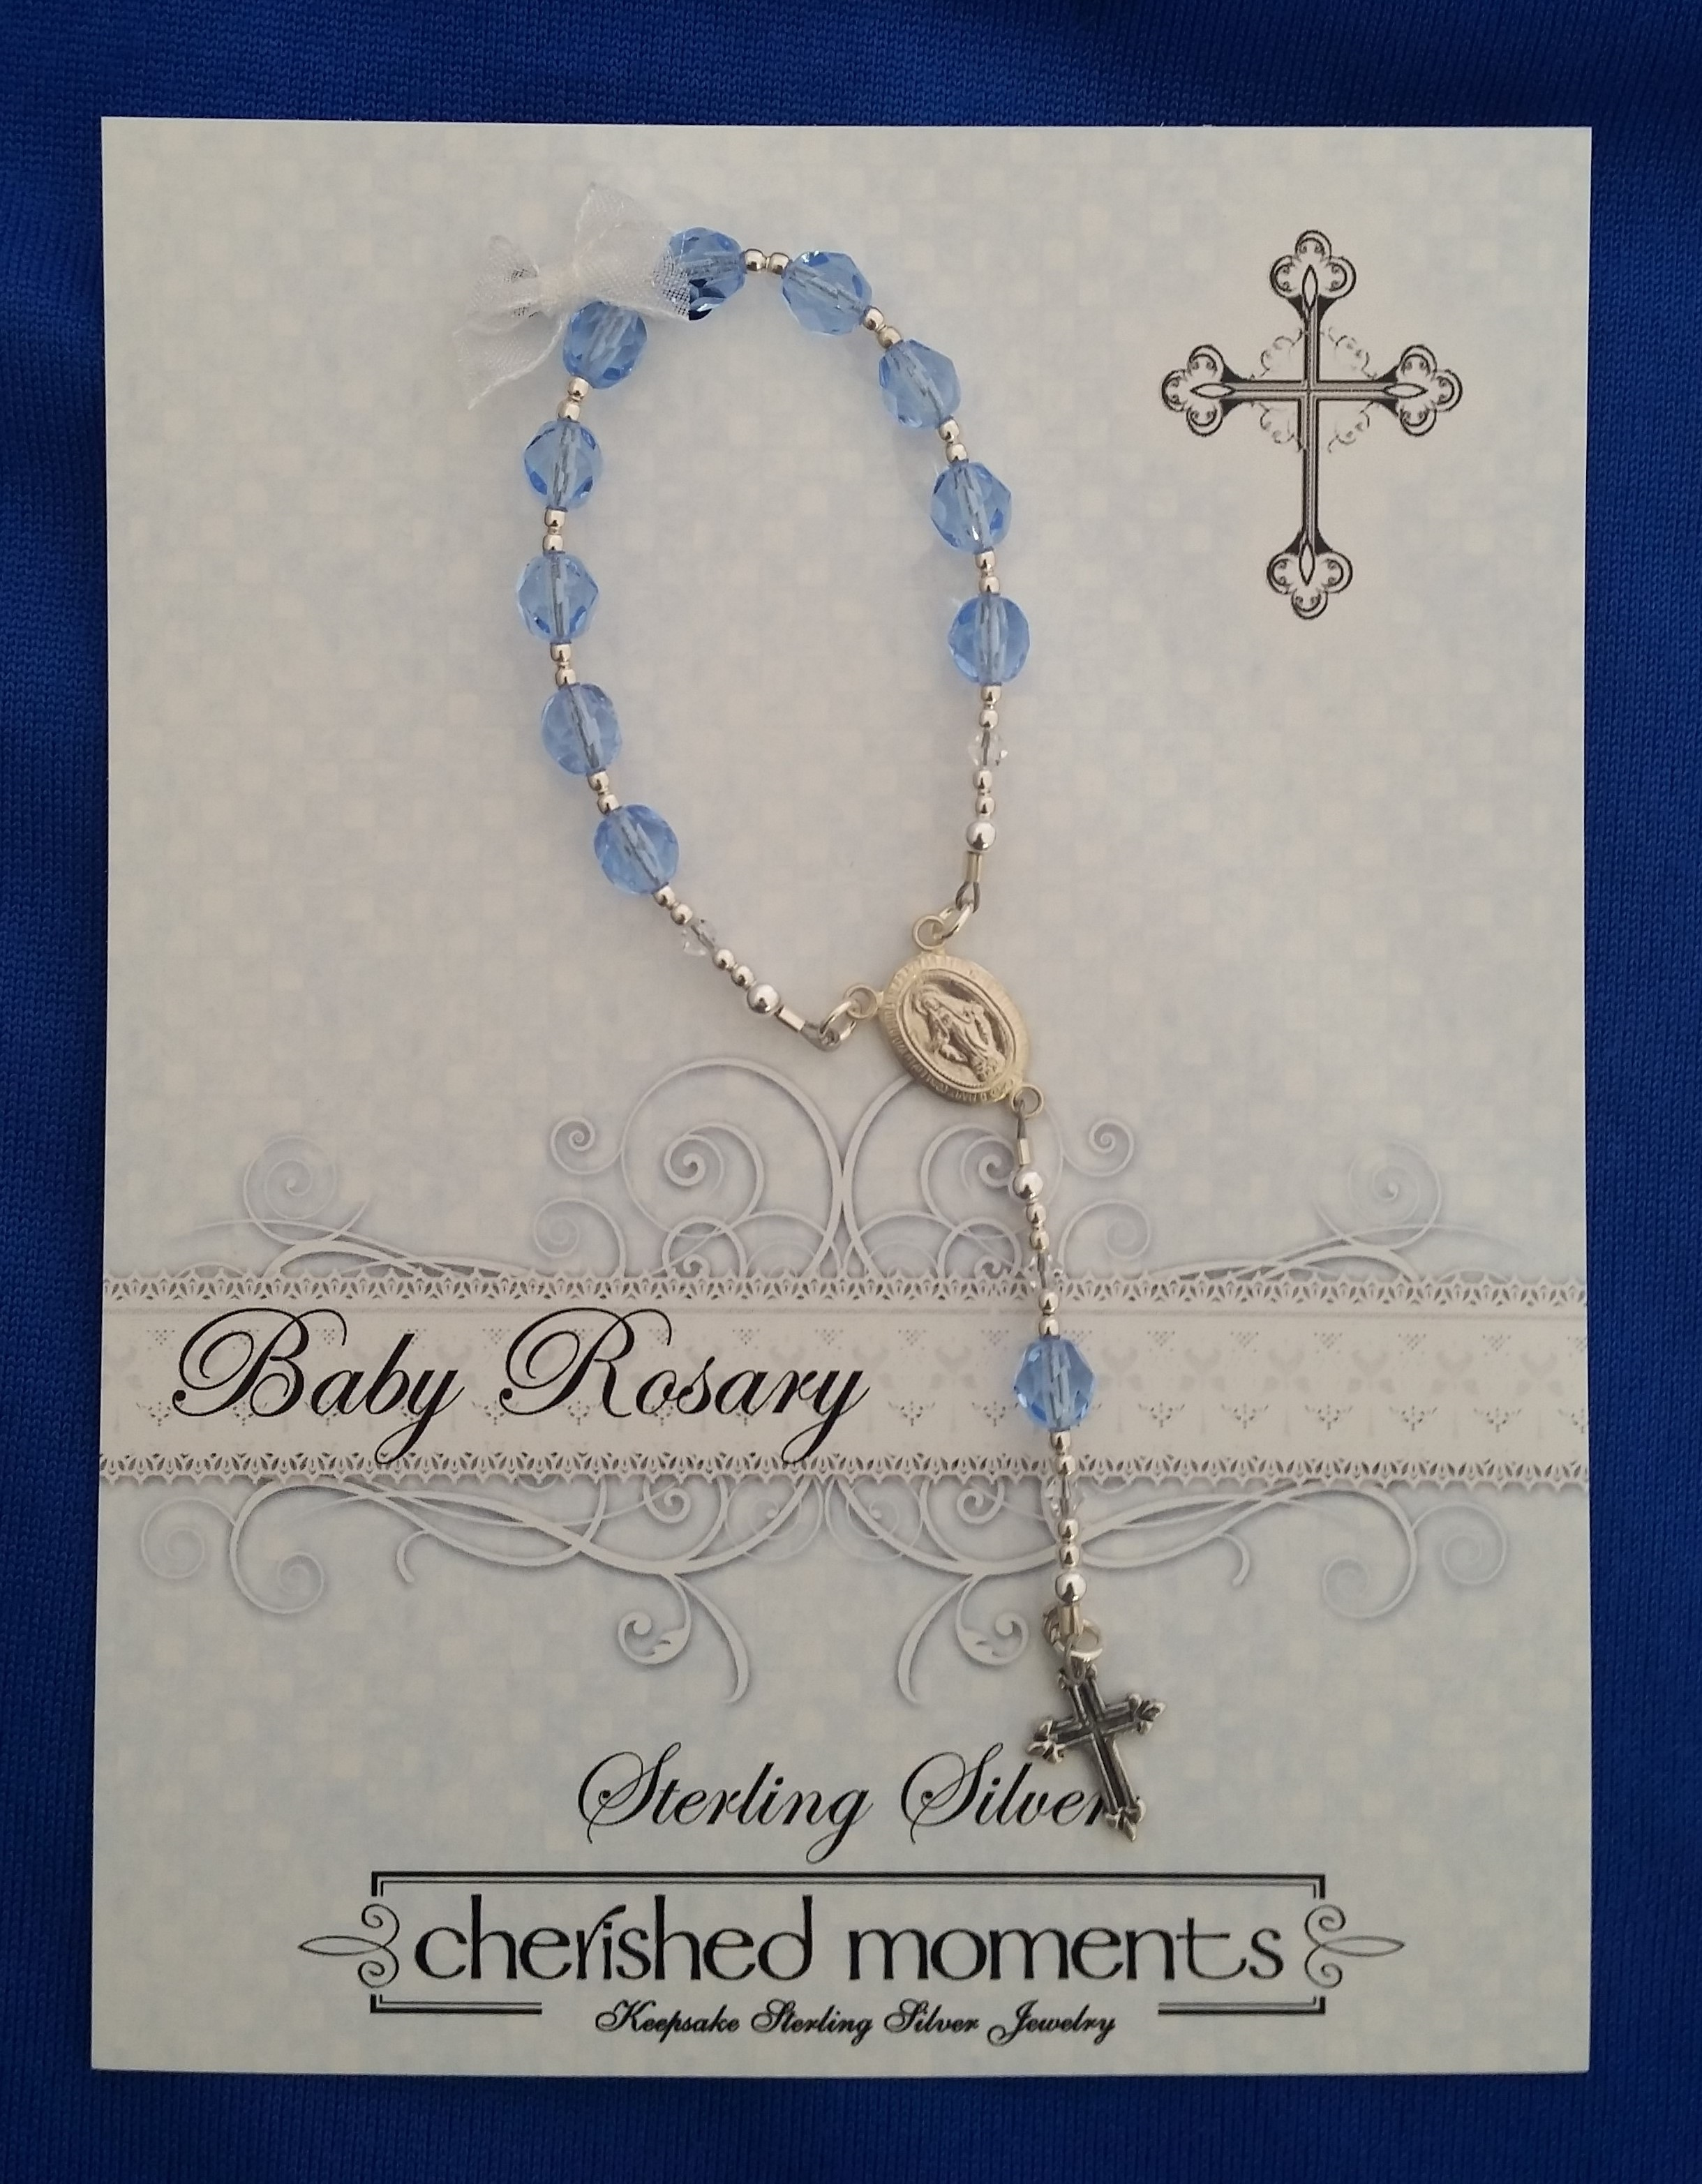 Cherished Moments - 'Baby Jewelry' - Rosary- baby-#BR-Blue